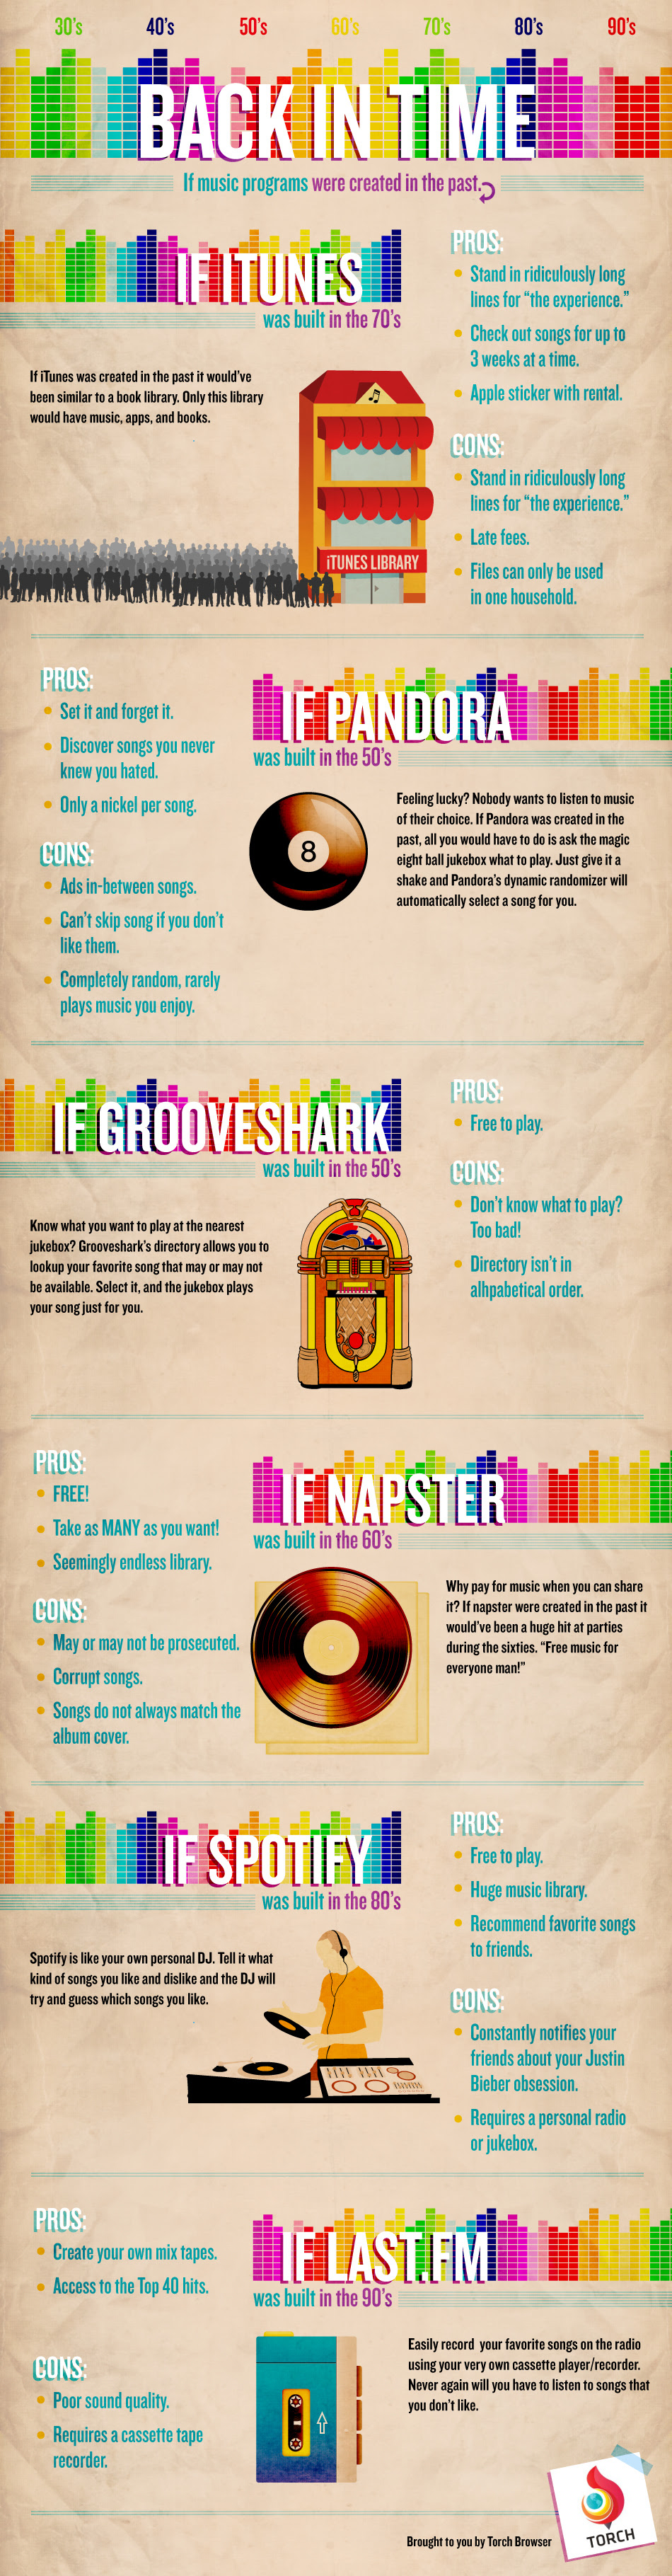 Back in Time Infographic - If Music Programs Were Created in the Past